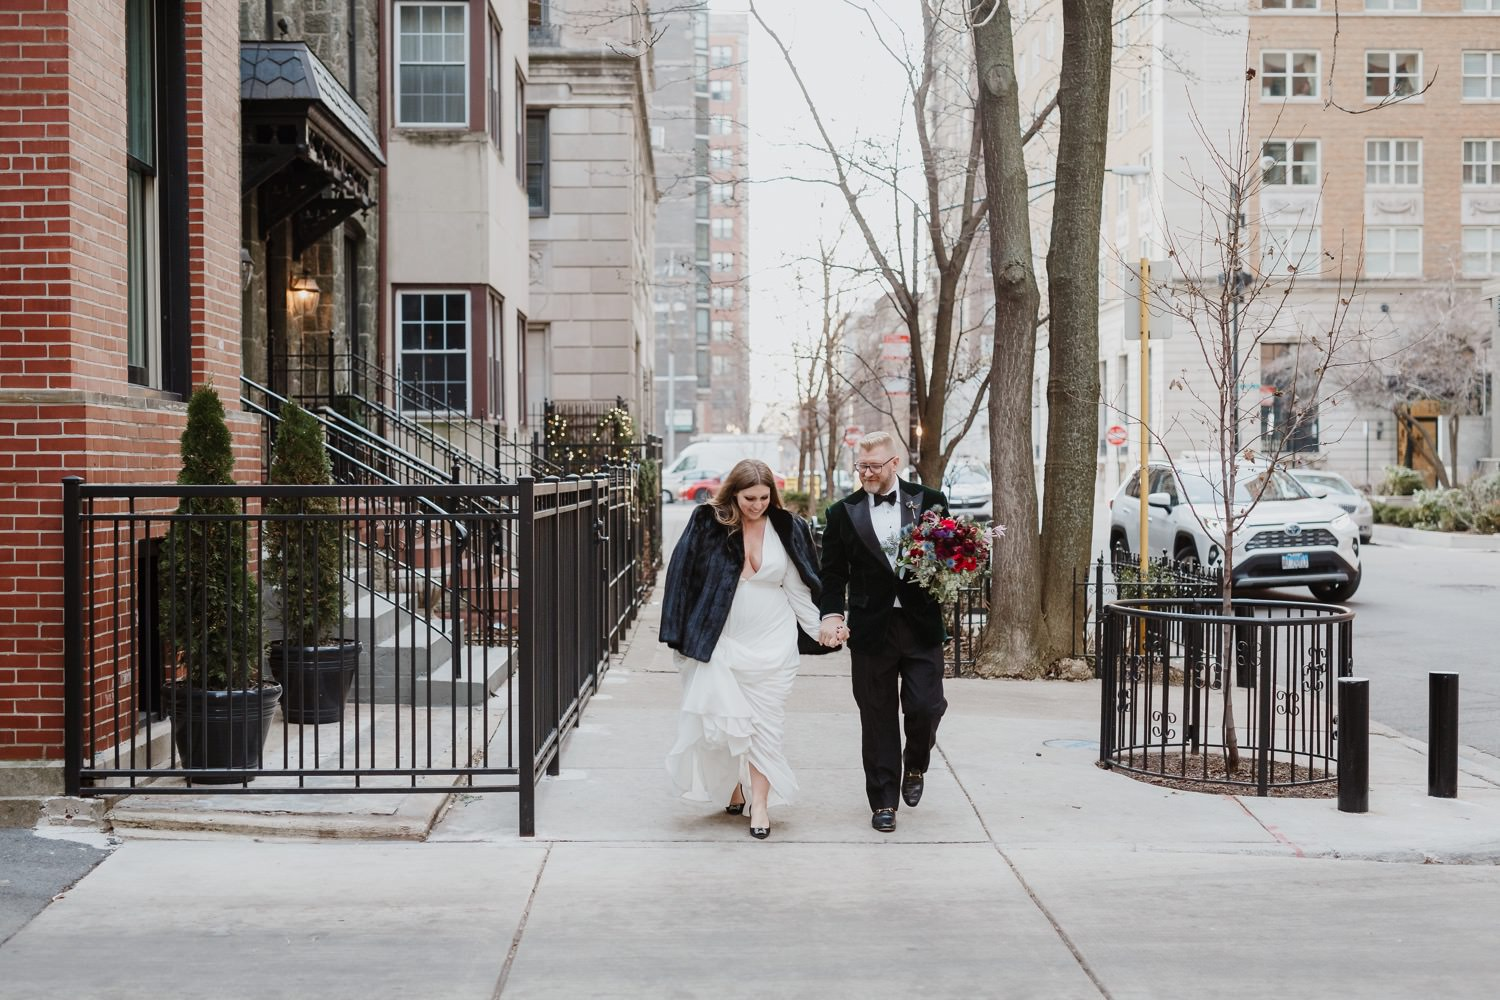 bride and groom walk in downtown street during their Chicago elopment